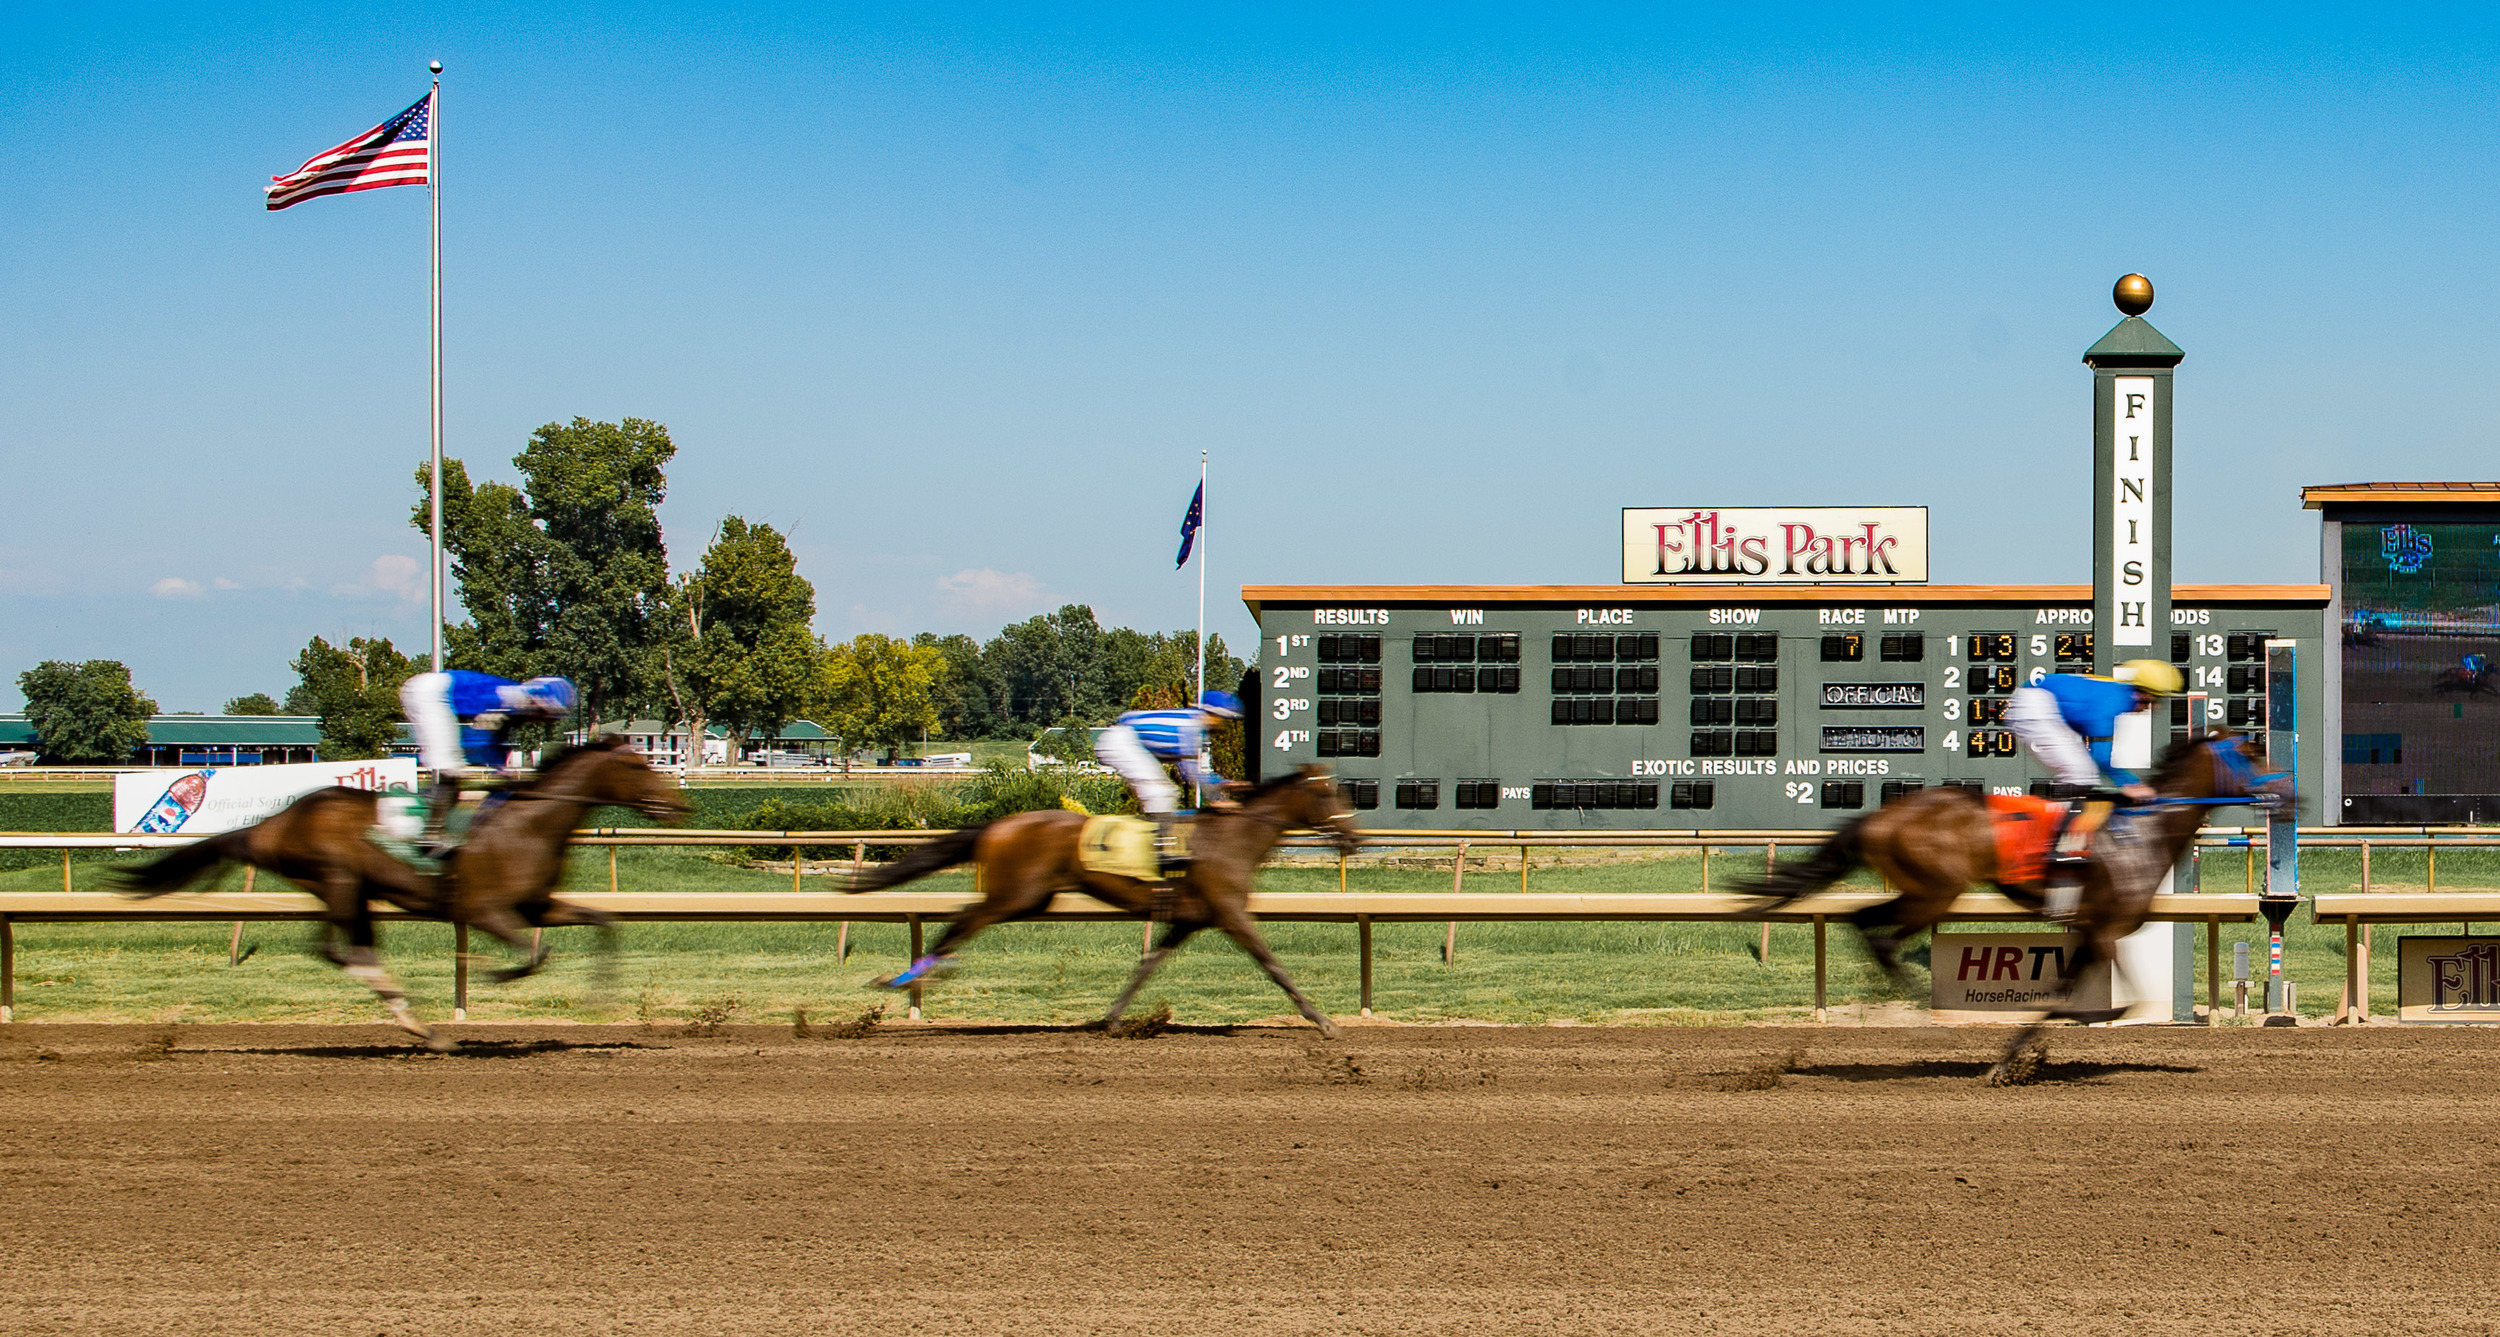 Fast horses. I dig photographic motion blur.